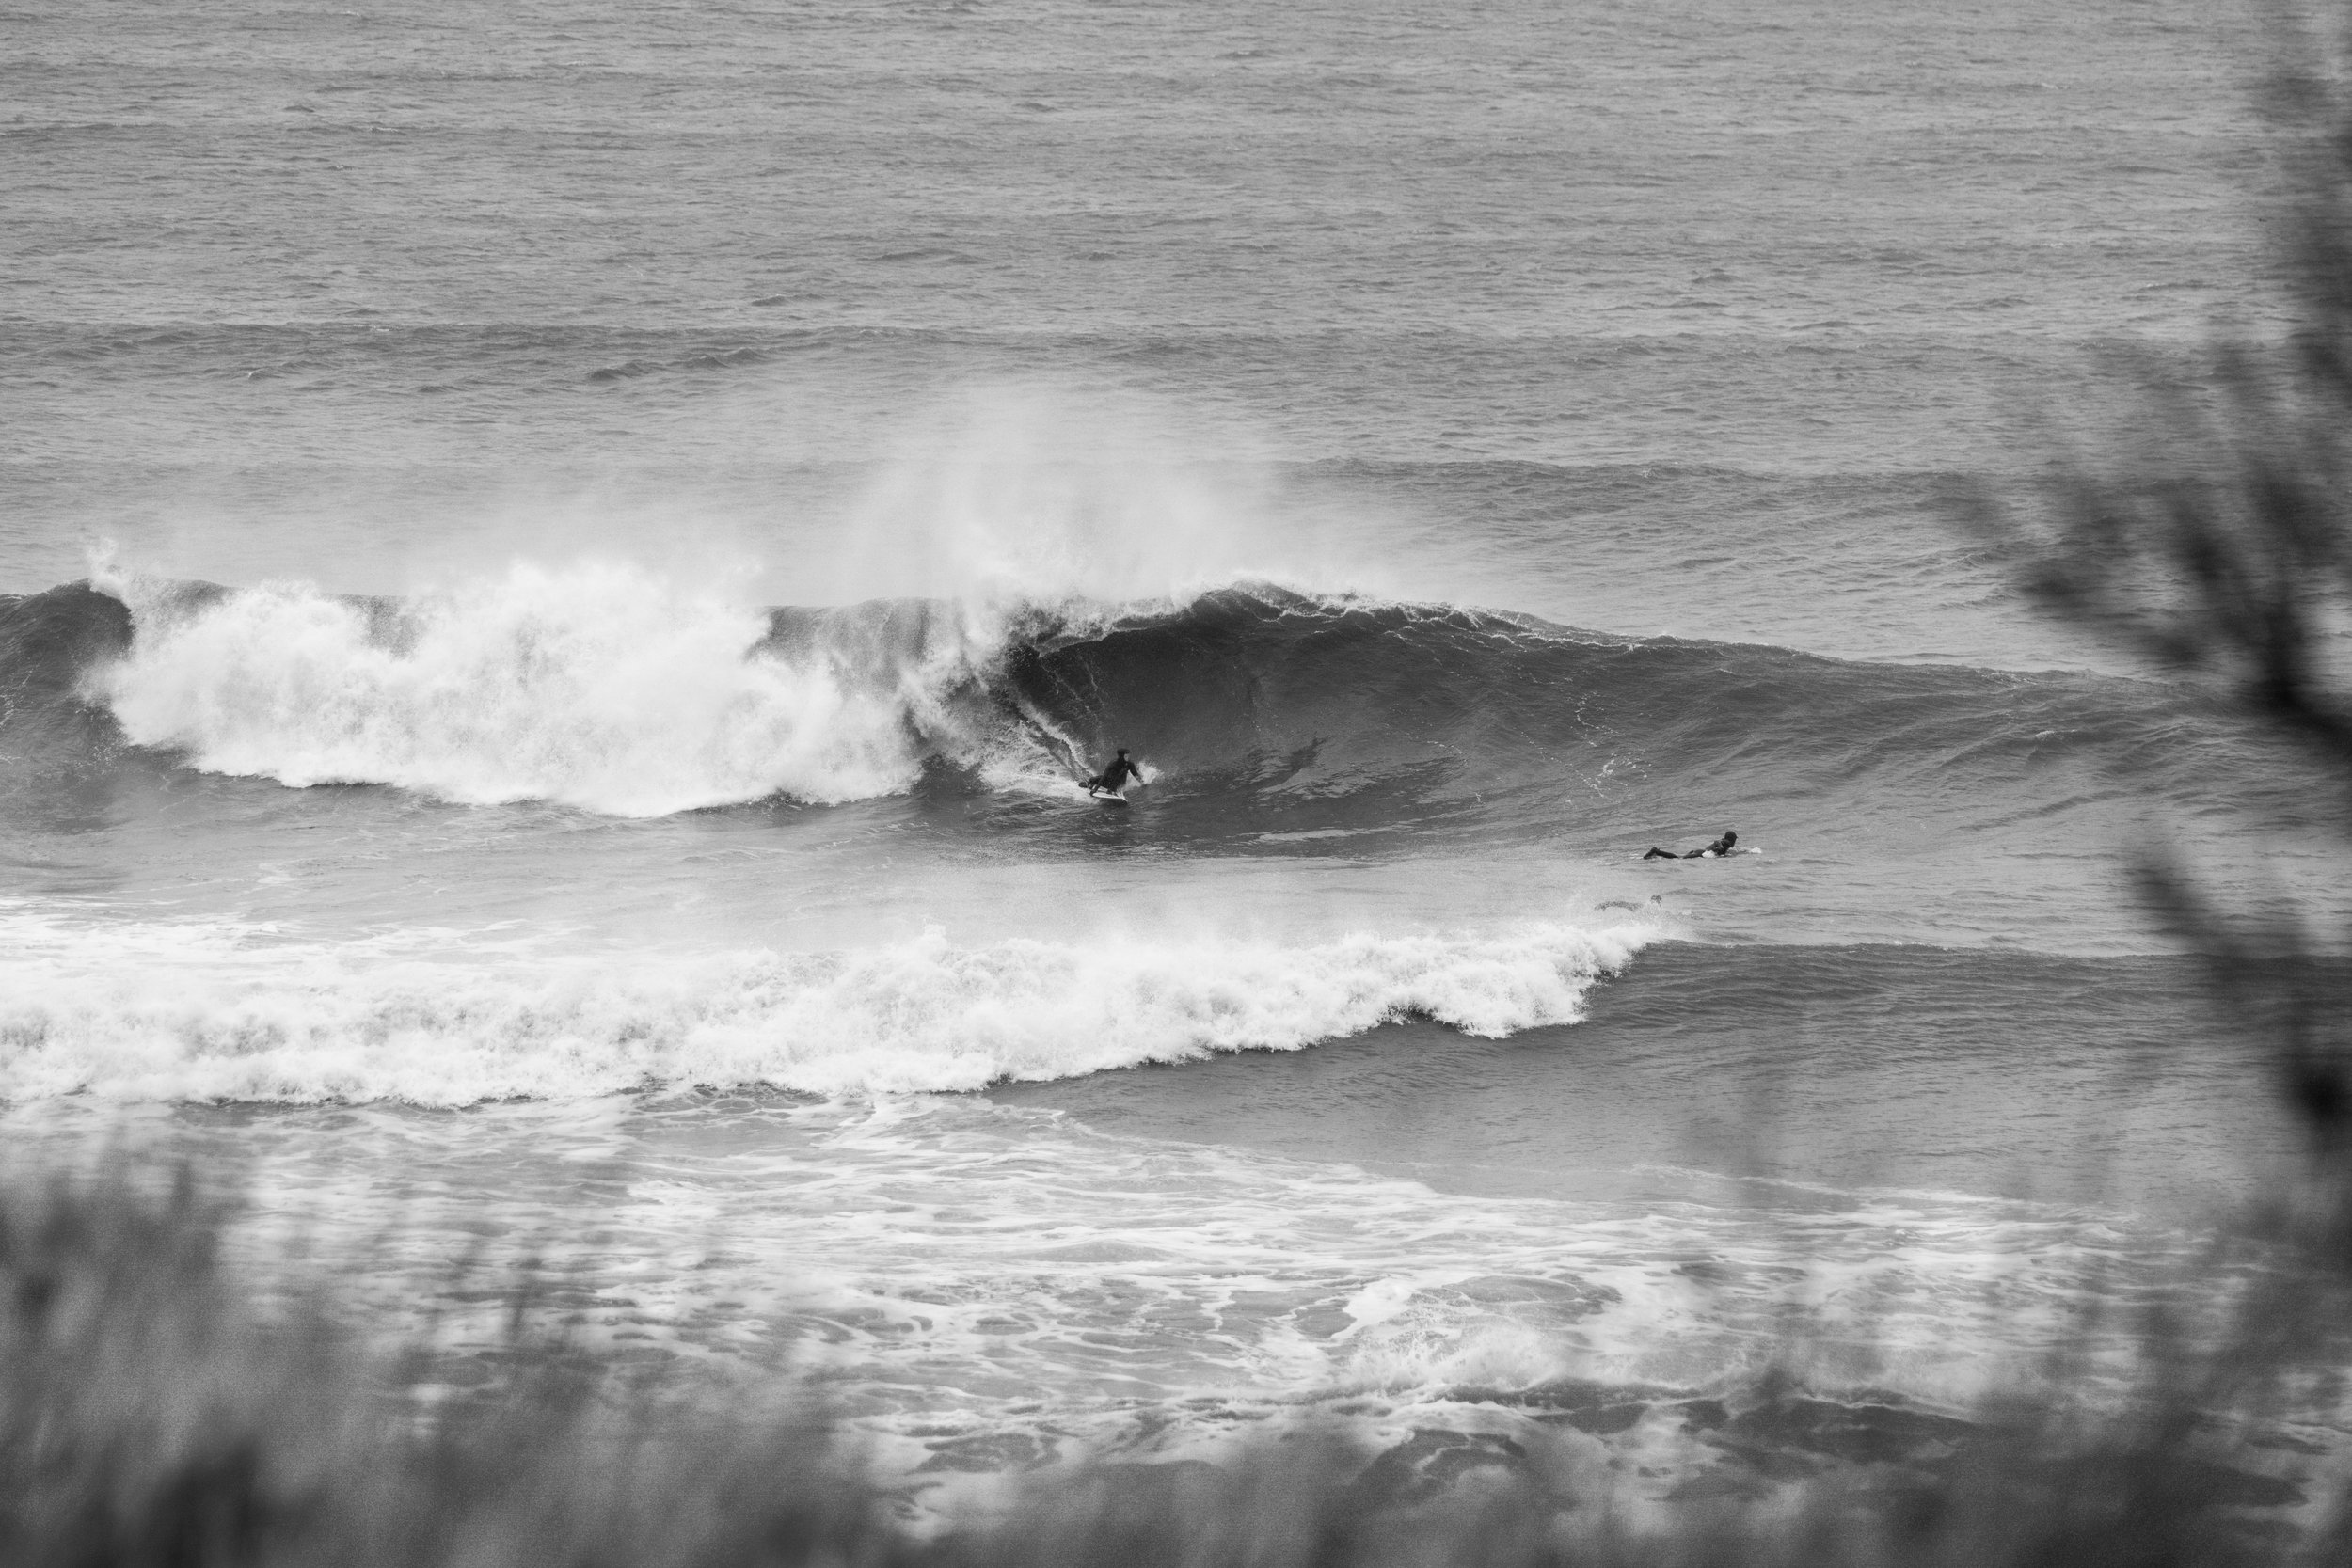 The North East coast gets plenty of swell in the winter months. I was equal parts nervous and excited about this day a couple of months ago.